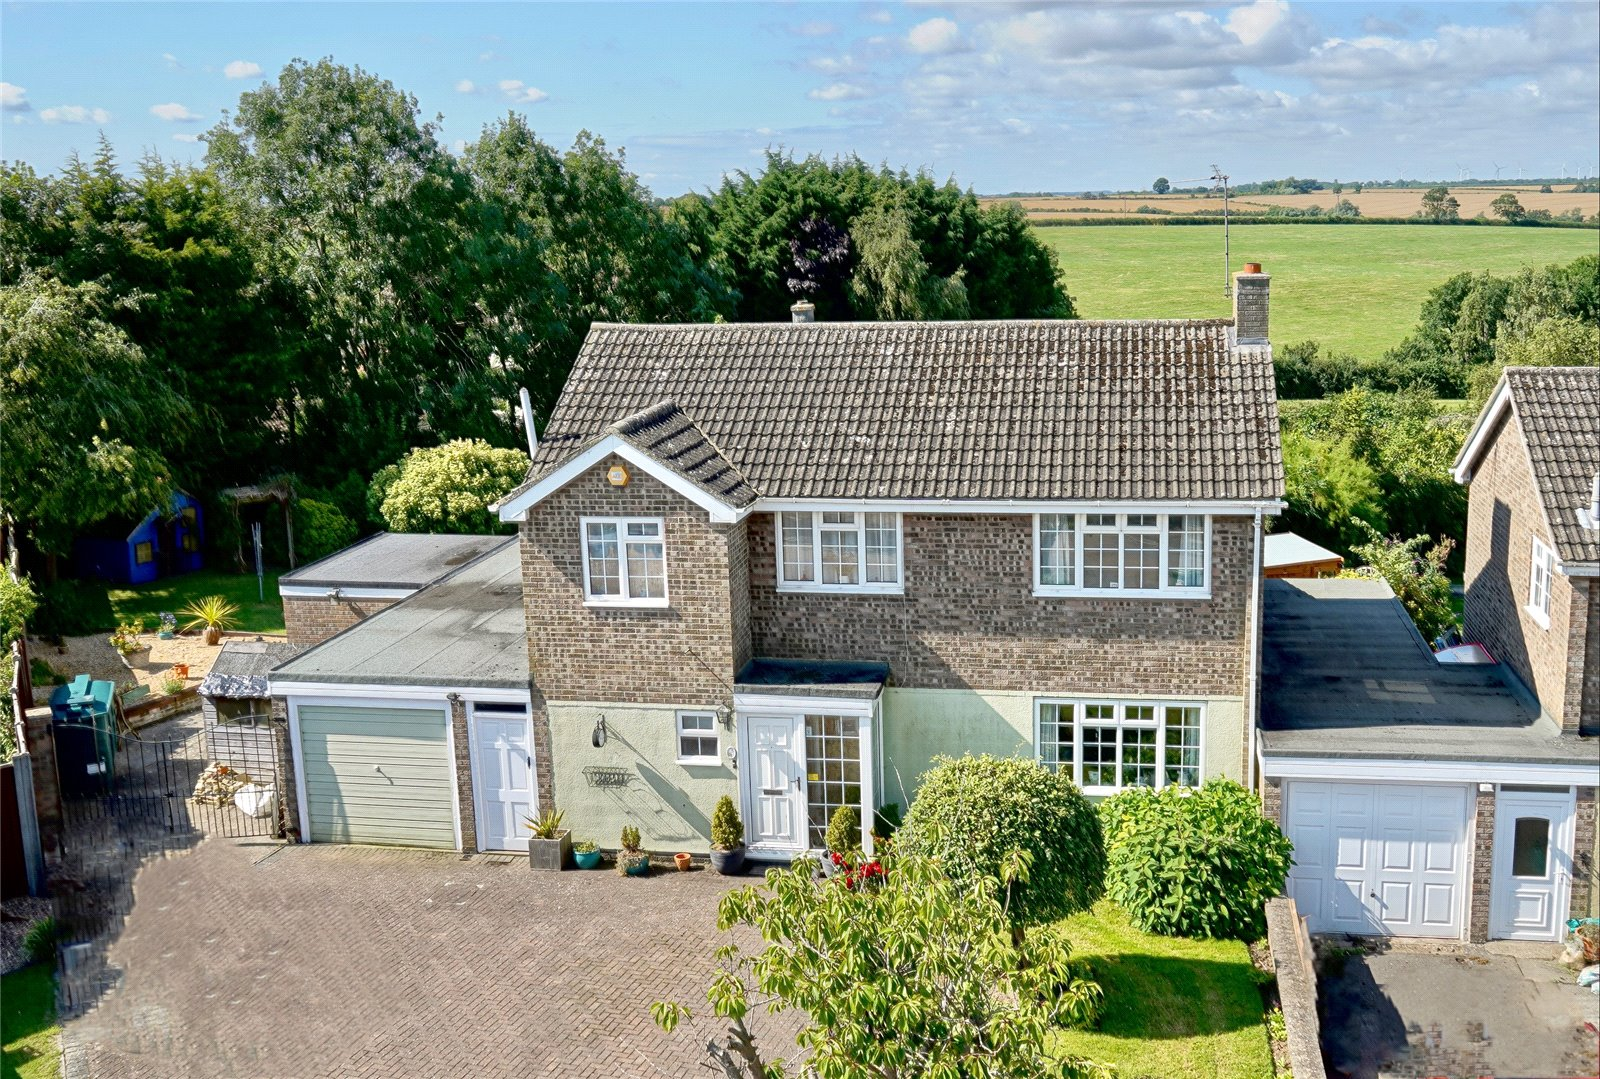 4 bed house for sale in Yeomans Close, Catworth, PE28